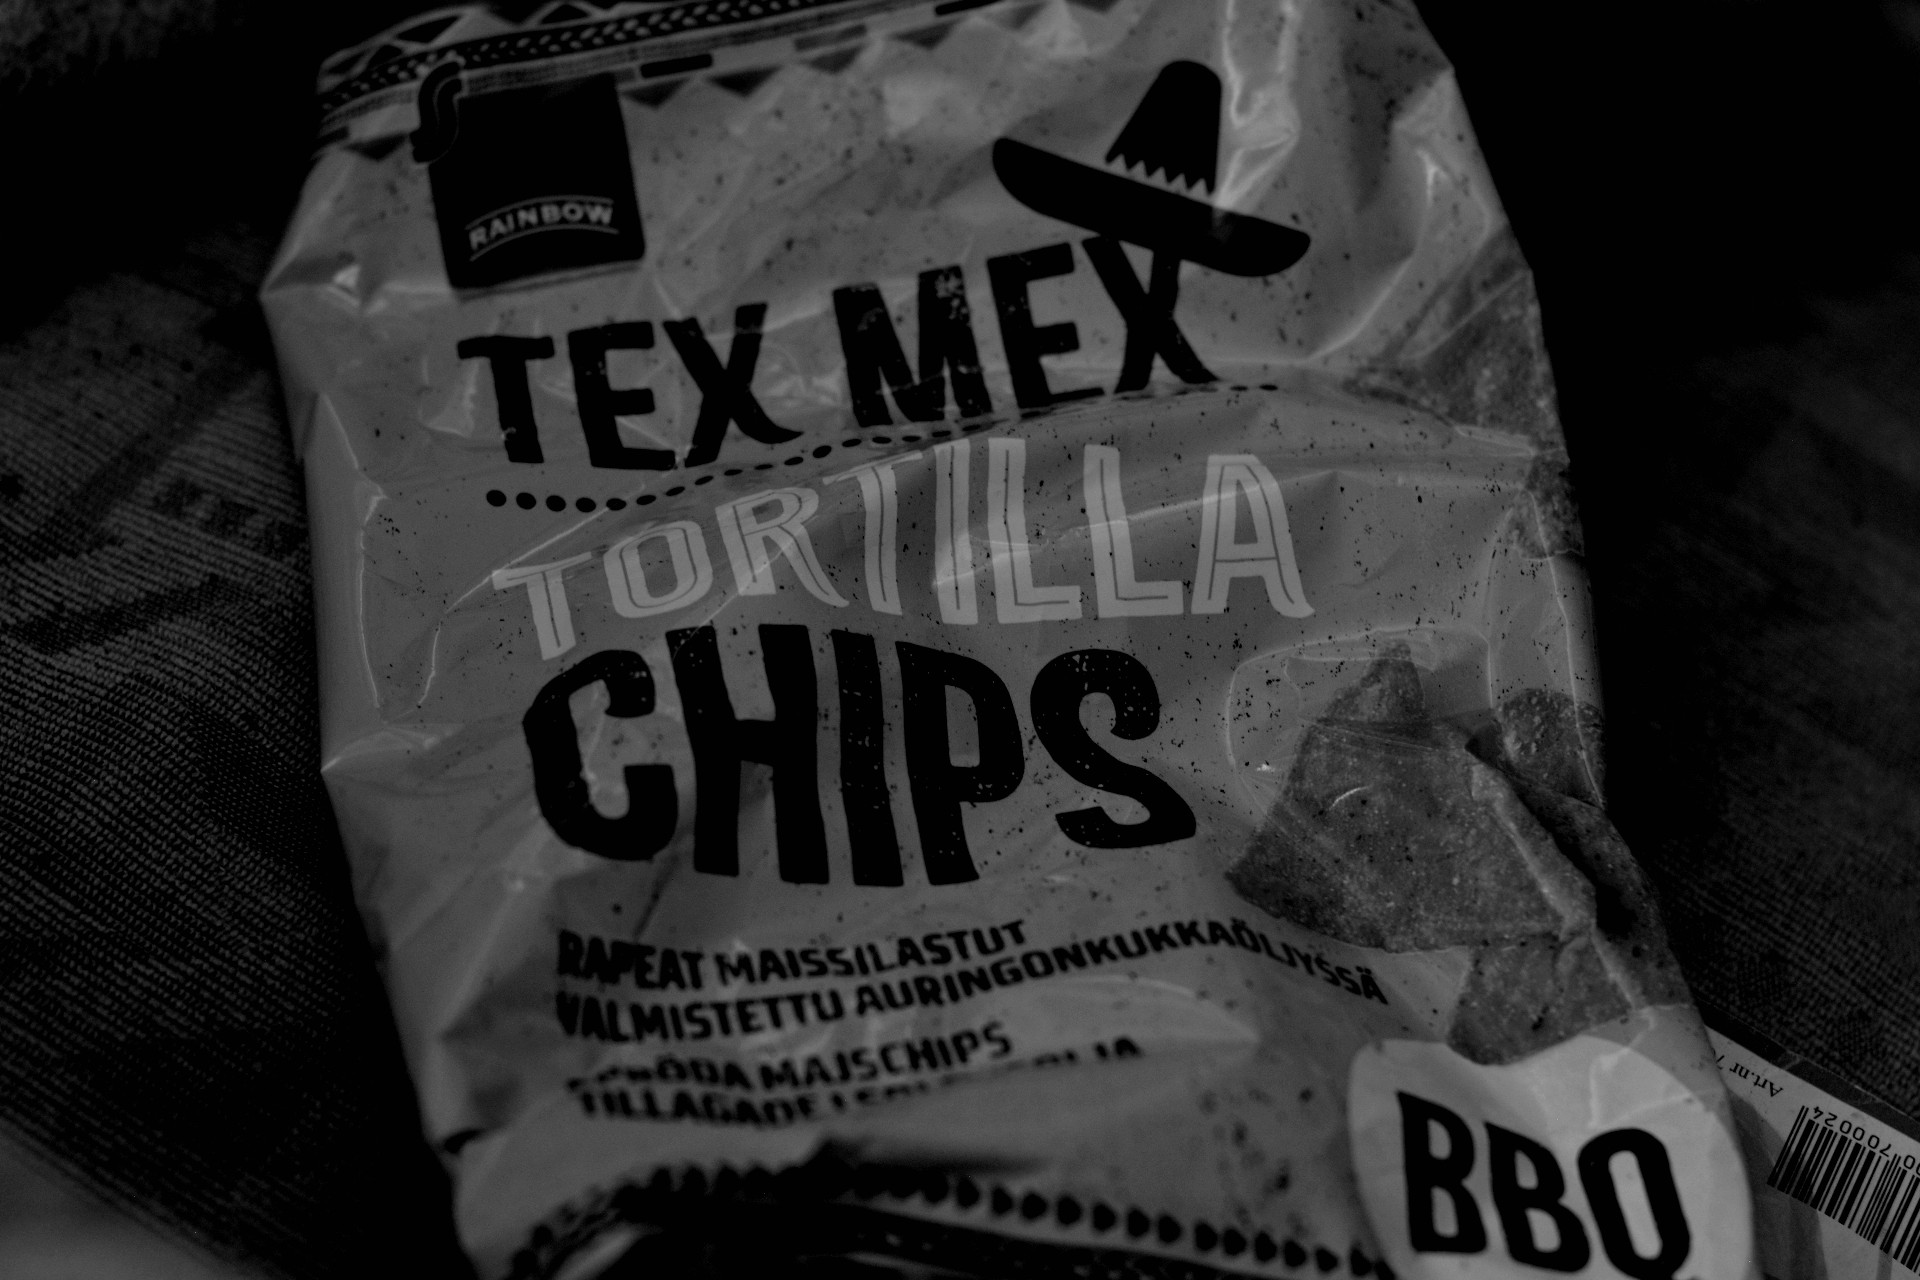 Rainbow Tex Mex tortilla chips